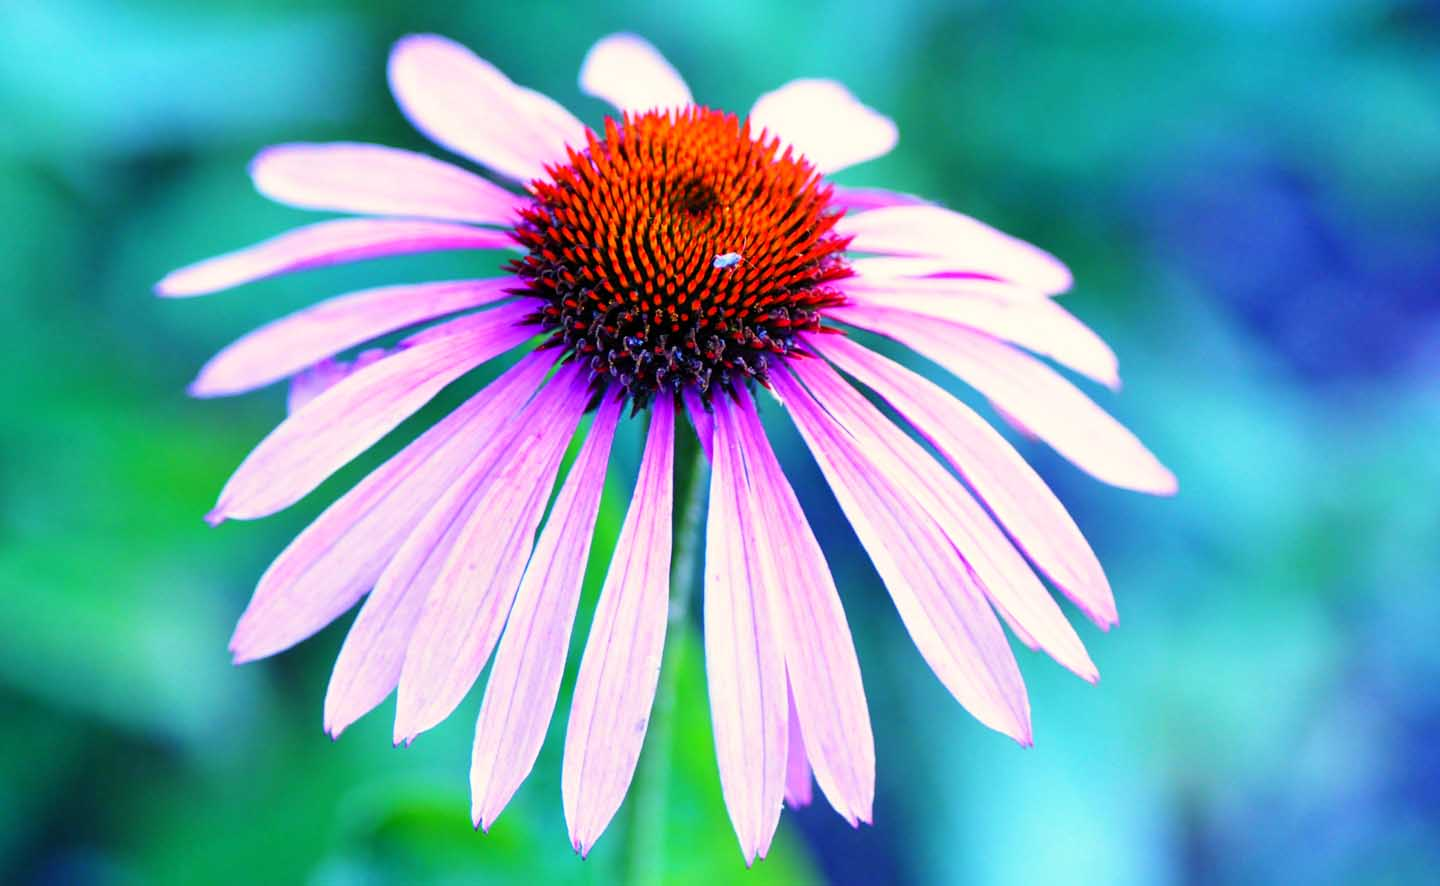 An Echinacea flower - Photo by Mabel Amber from Pexels